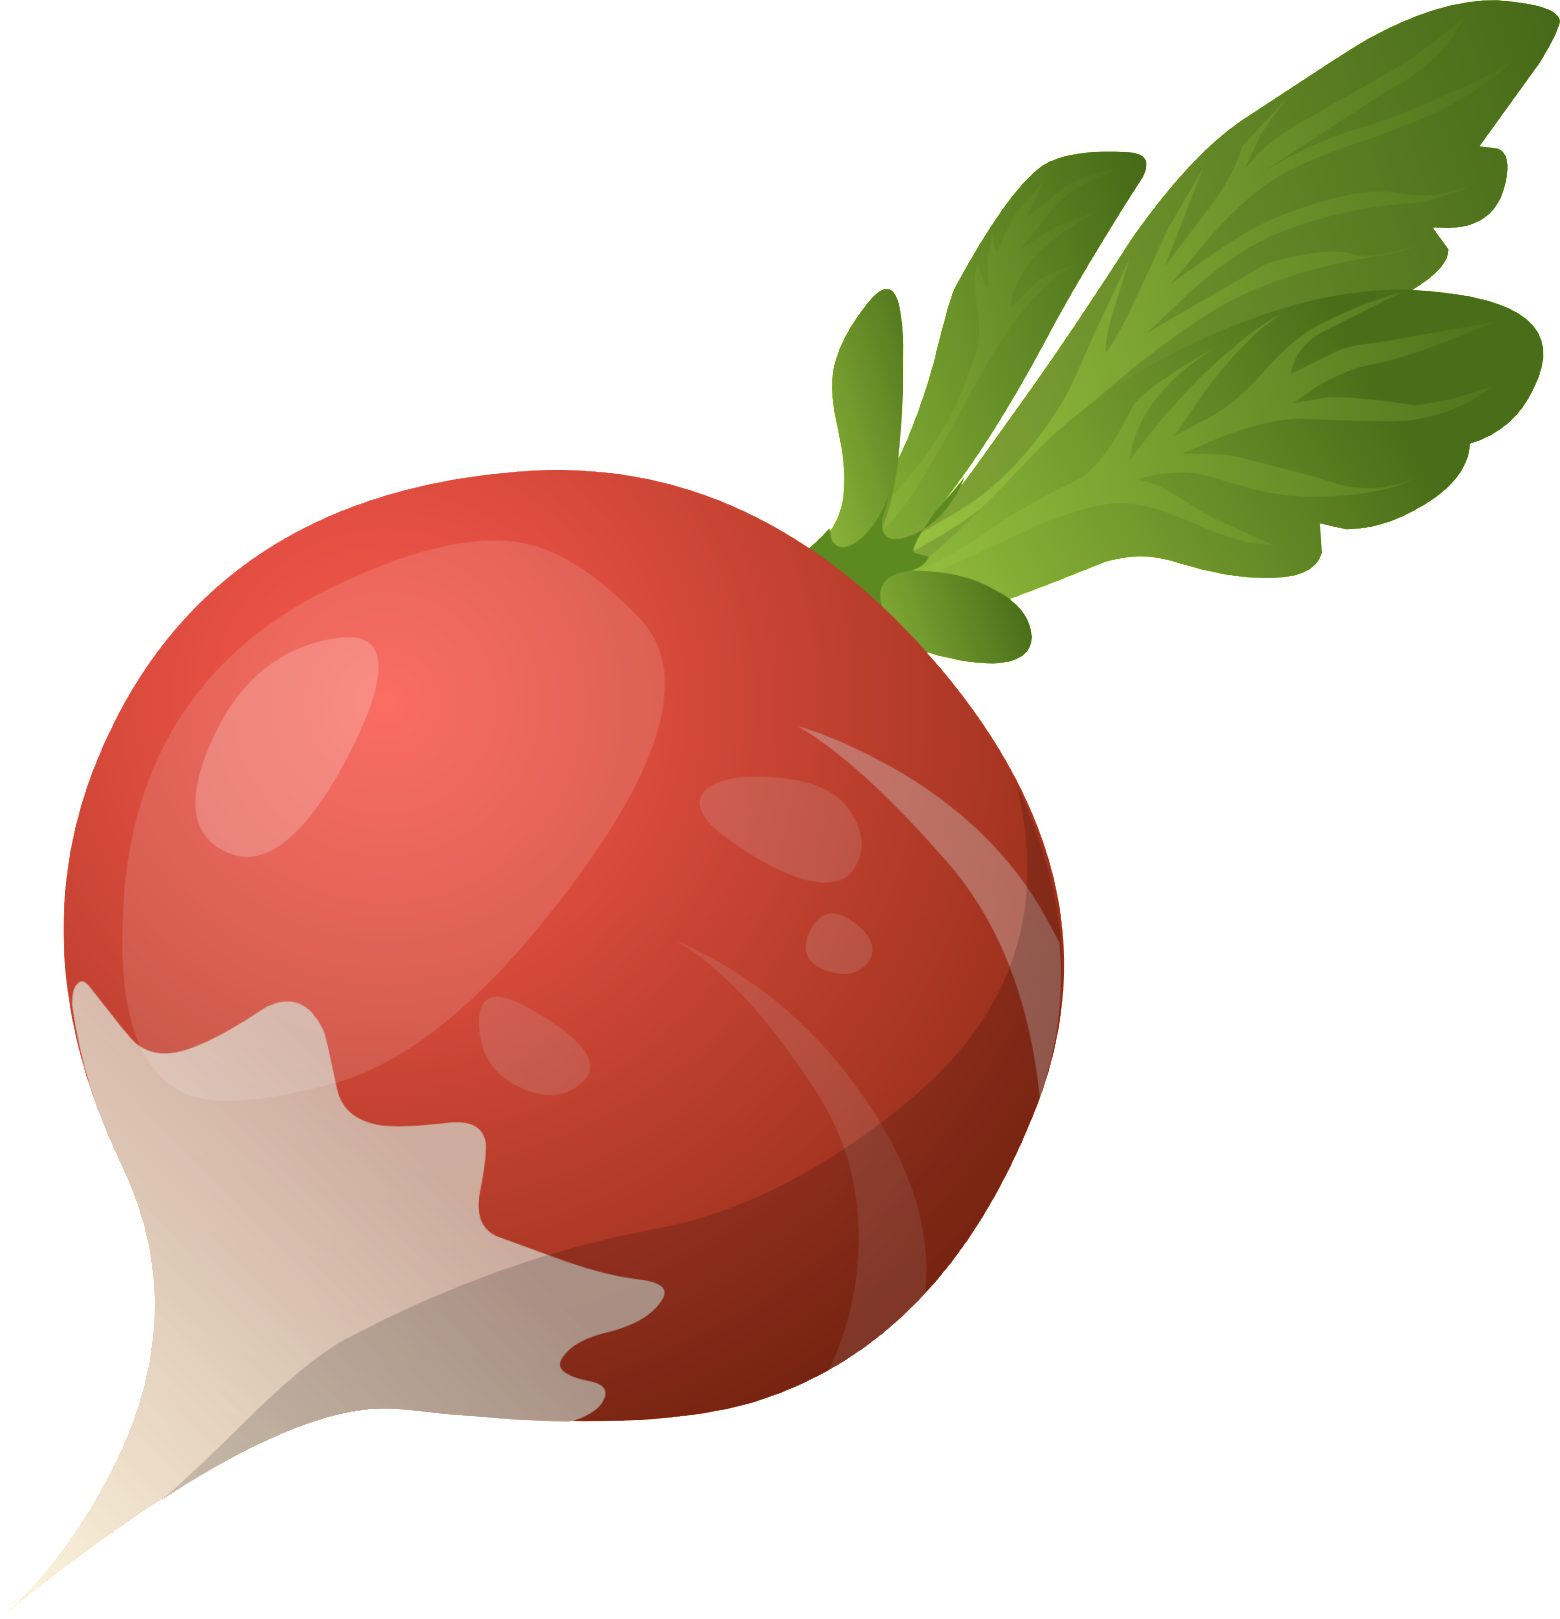 Pin by pngsector on Beetroot Clip art & Beetroot PNG image in 2019.